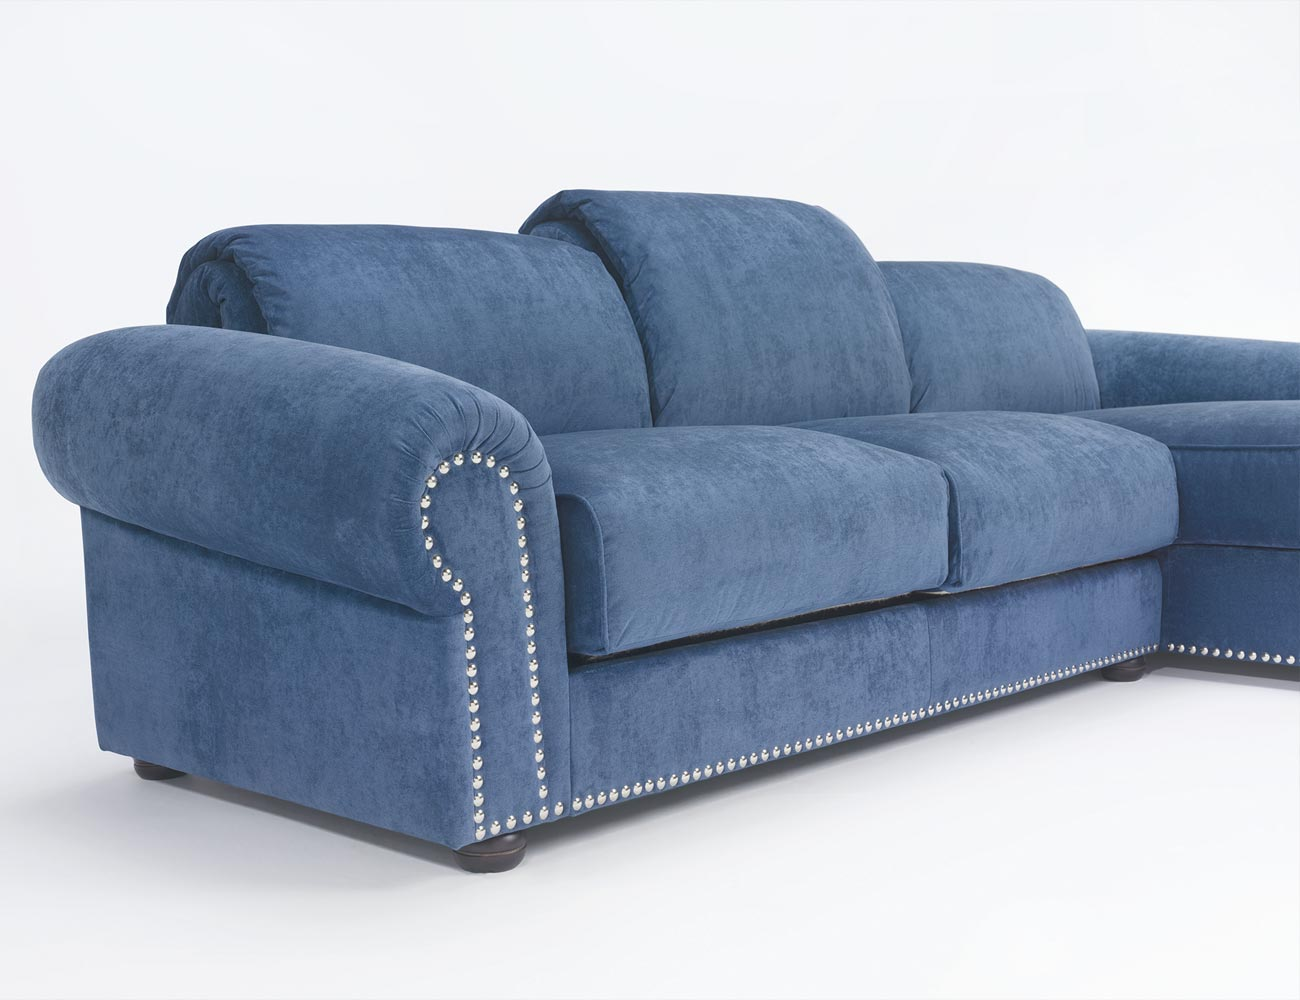 Sofa chaiselongue gran lujo decorativo azul 123